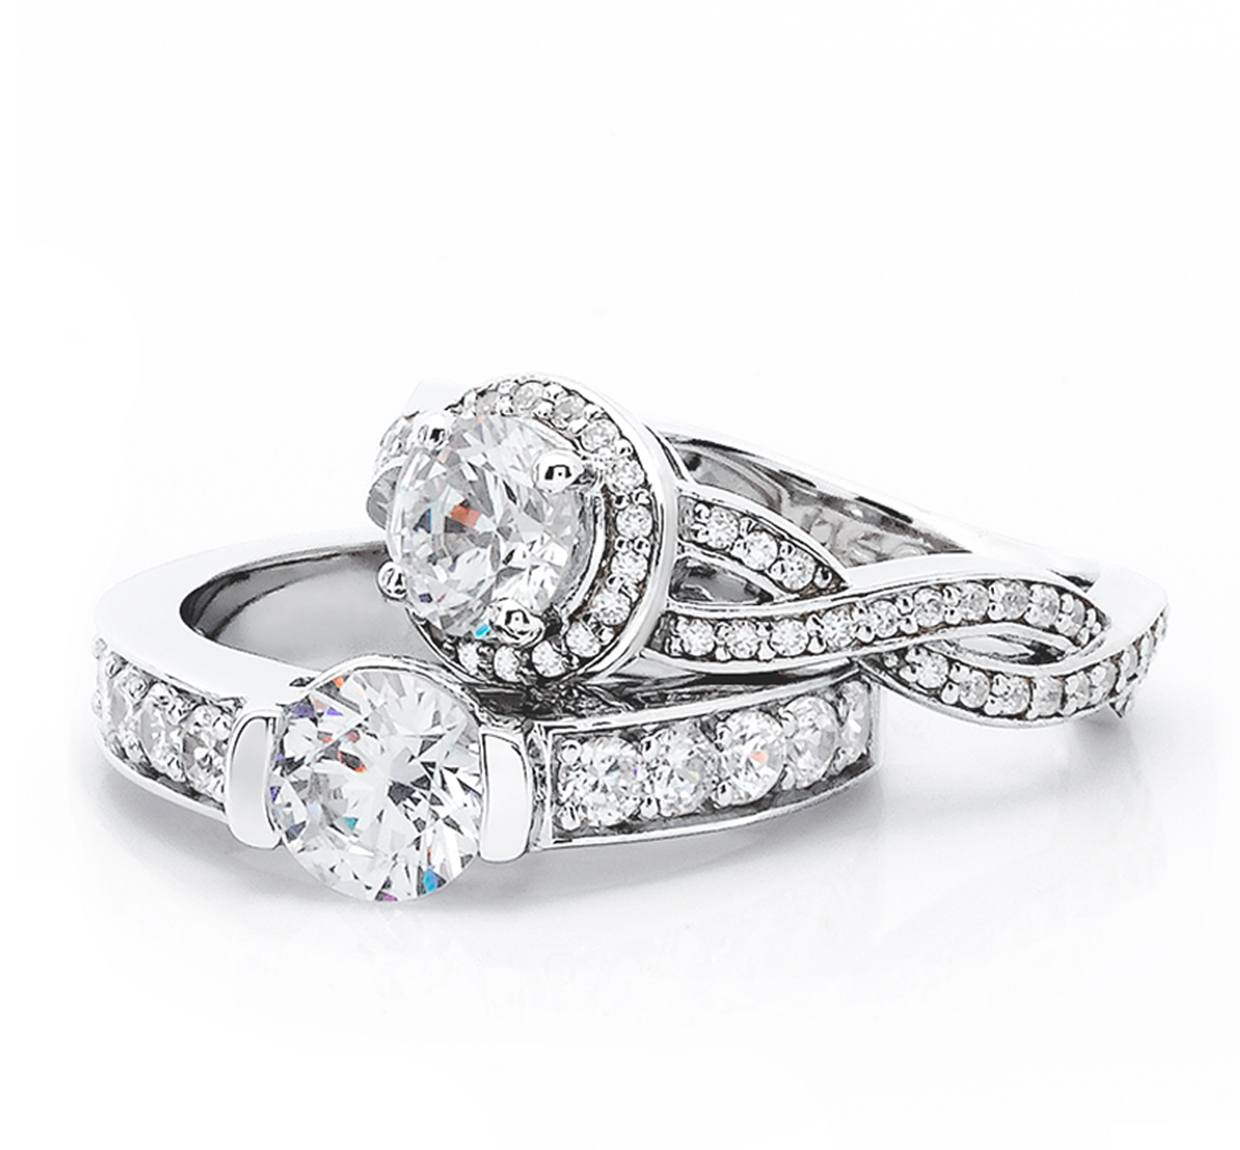 engagement rings dominion jewelers. Black Bedroom Furniture Sets. Home Design Ideas